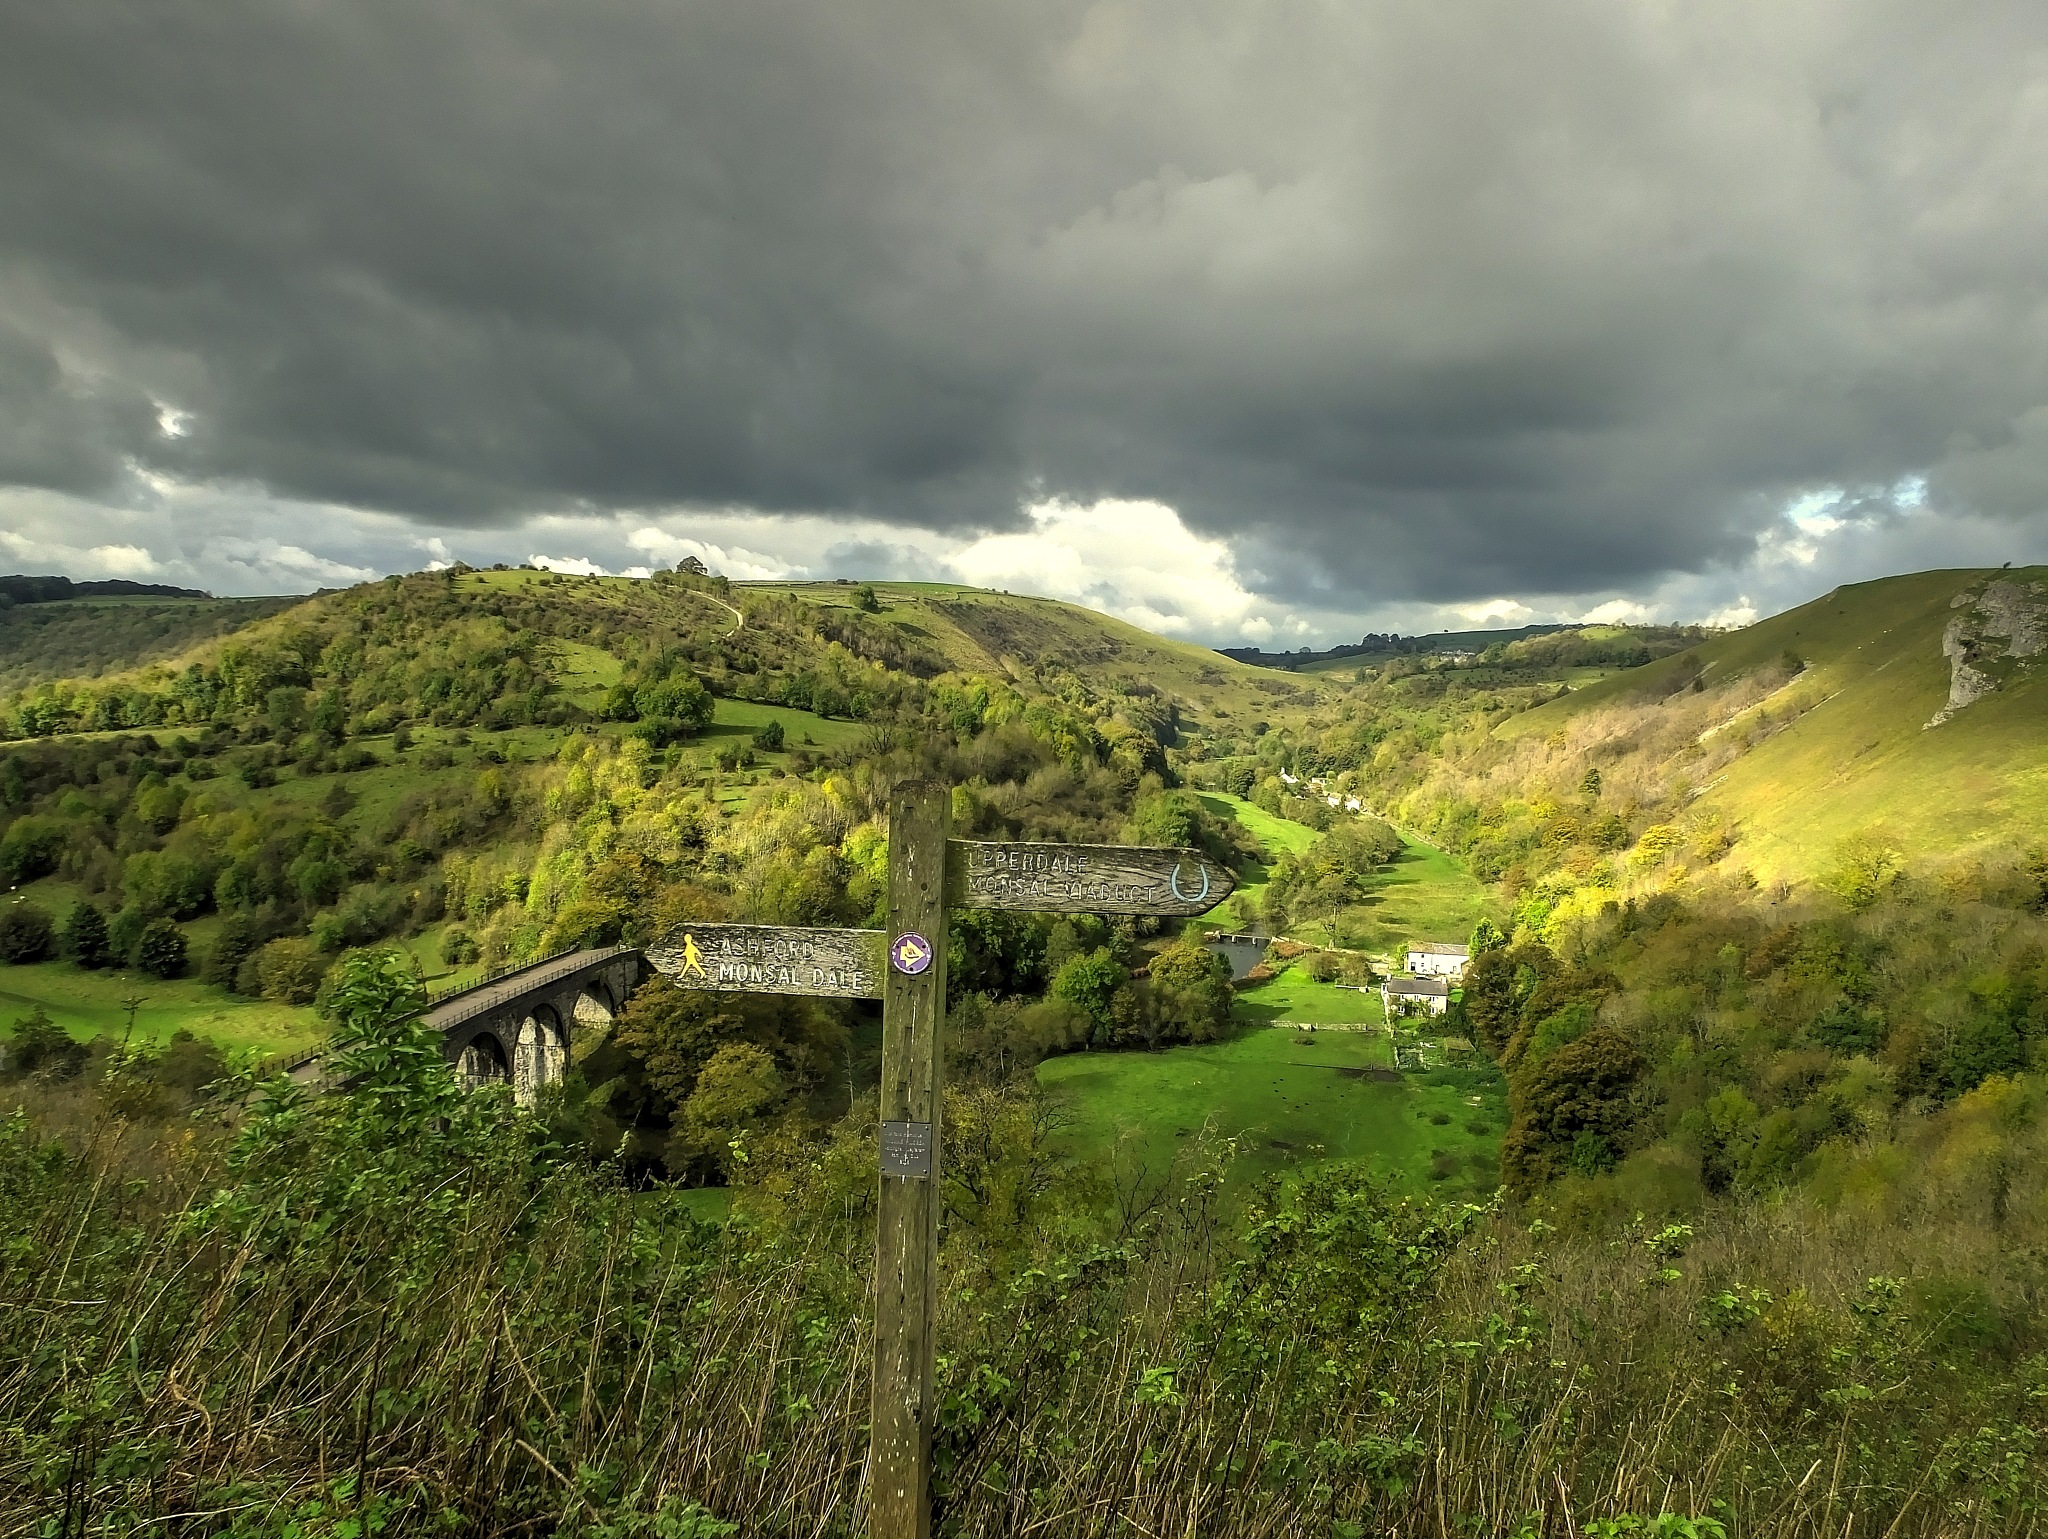 Down the Dale 2 by ianmoorcroft